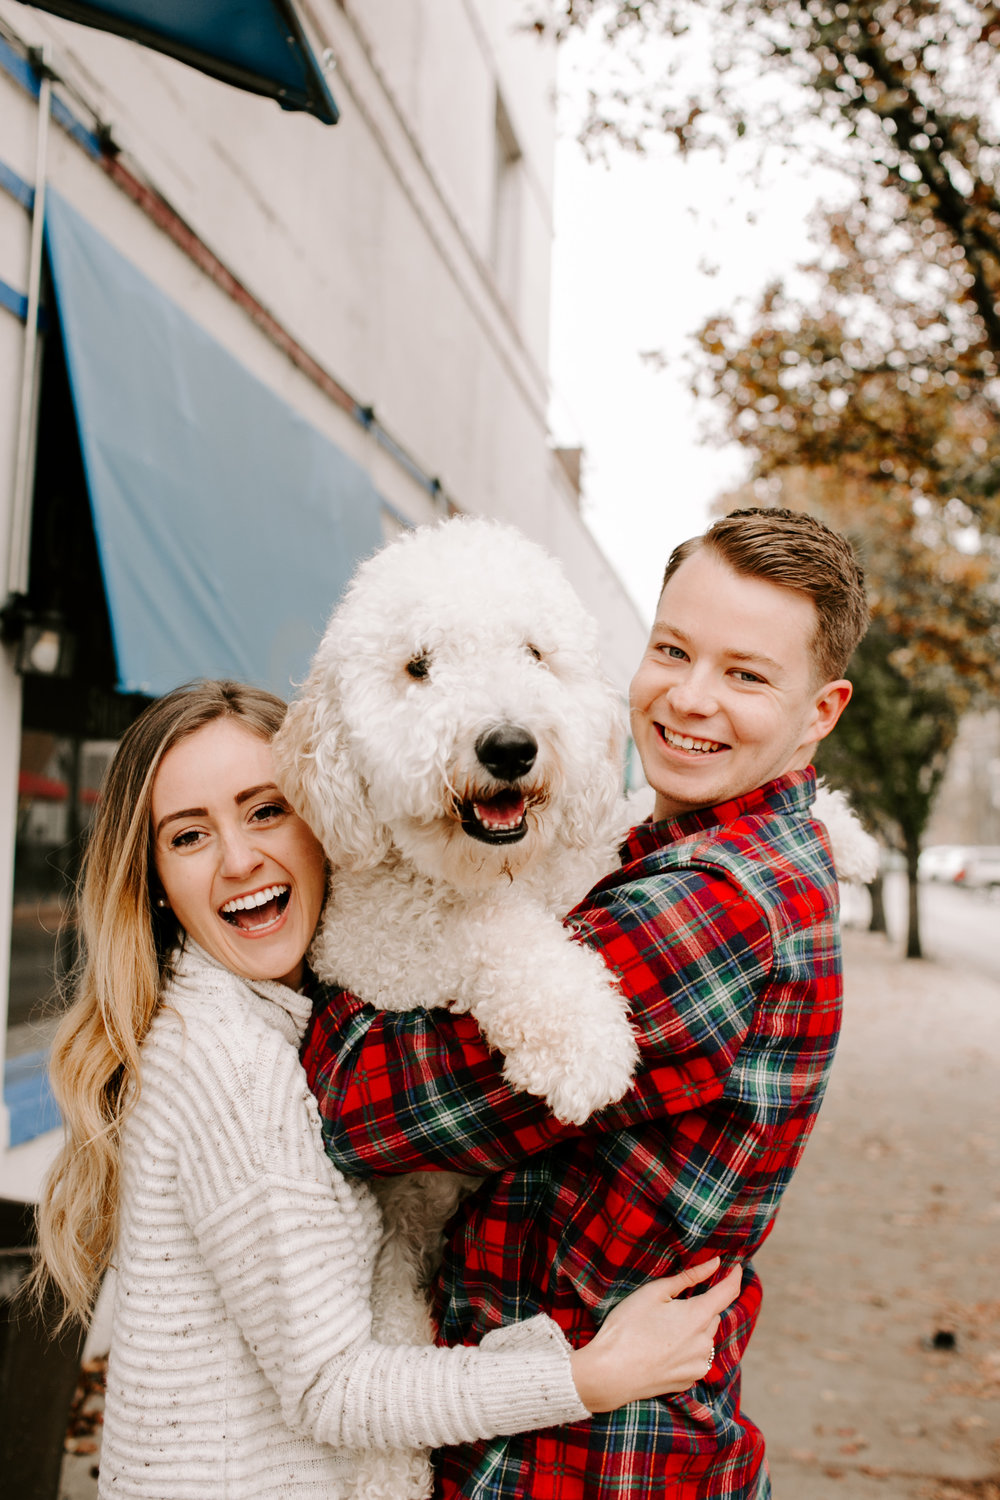 Hallie and Tyler Couple Photos downtown Broad Ripple Indiana Emily Elyse Wehner Photography LLC-50.jpg